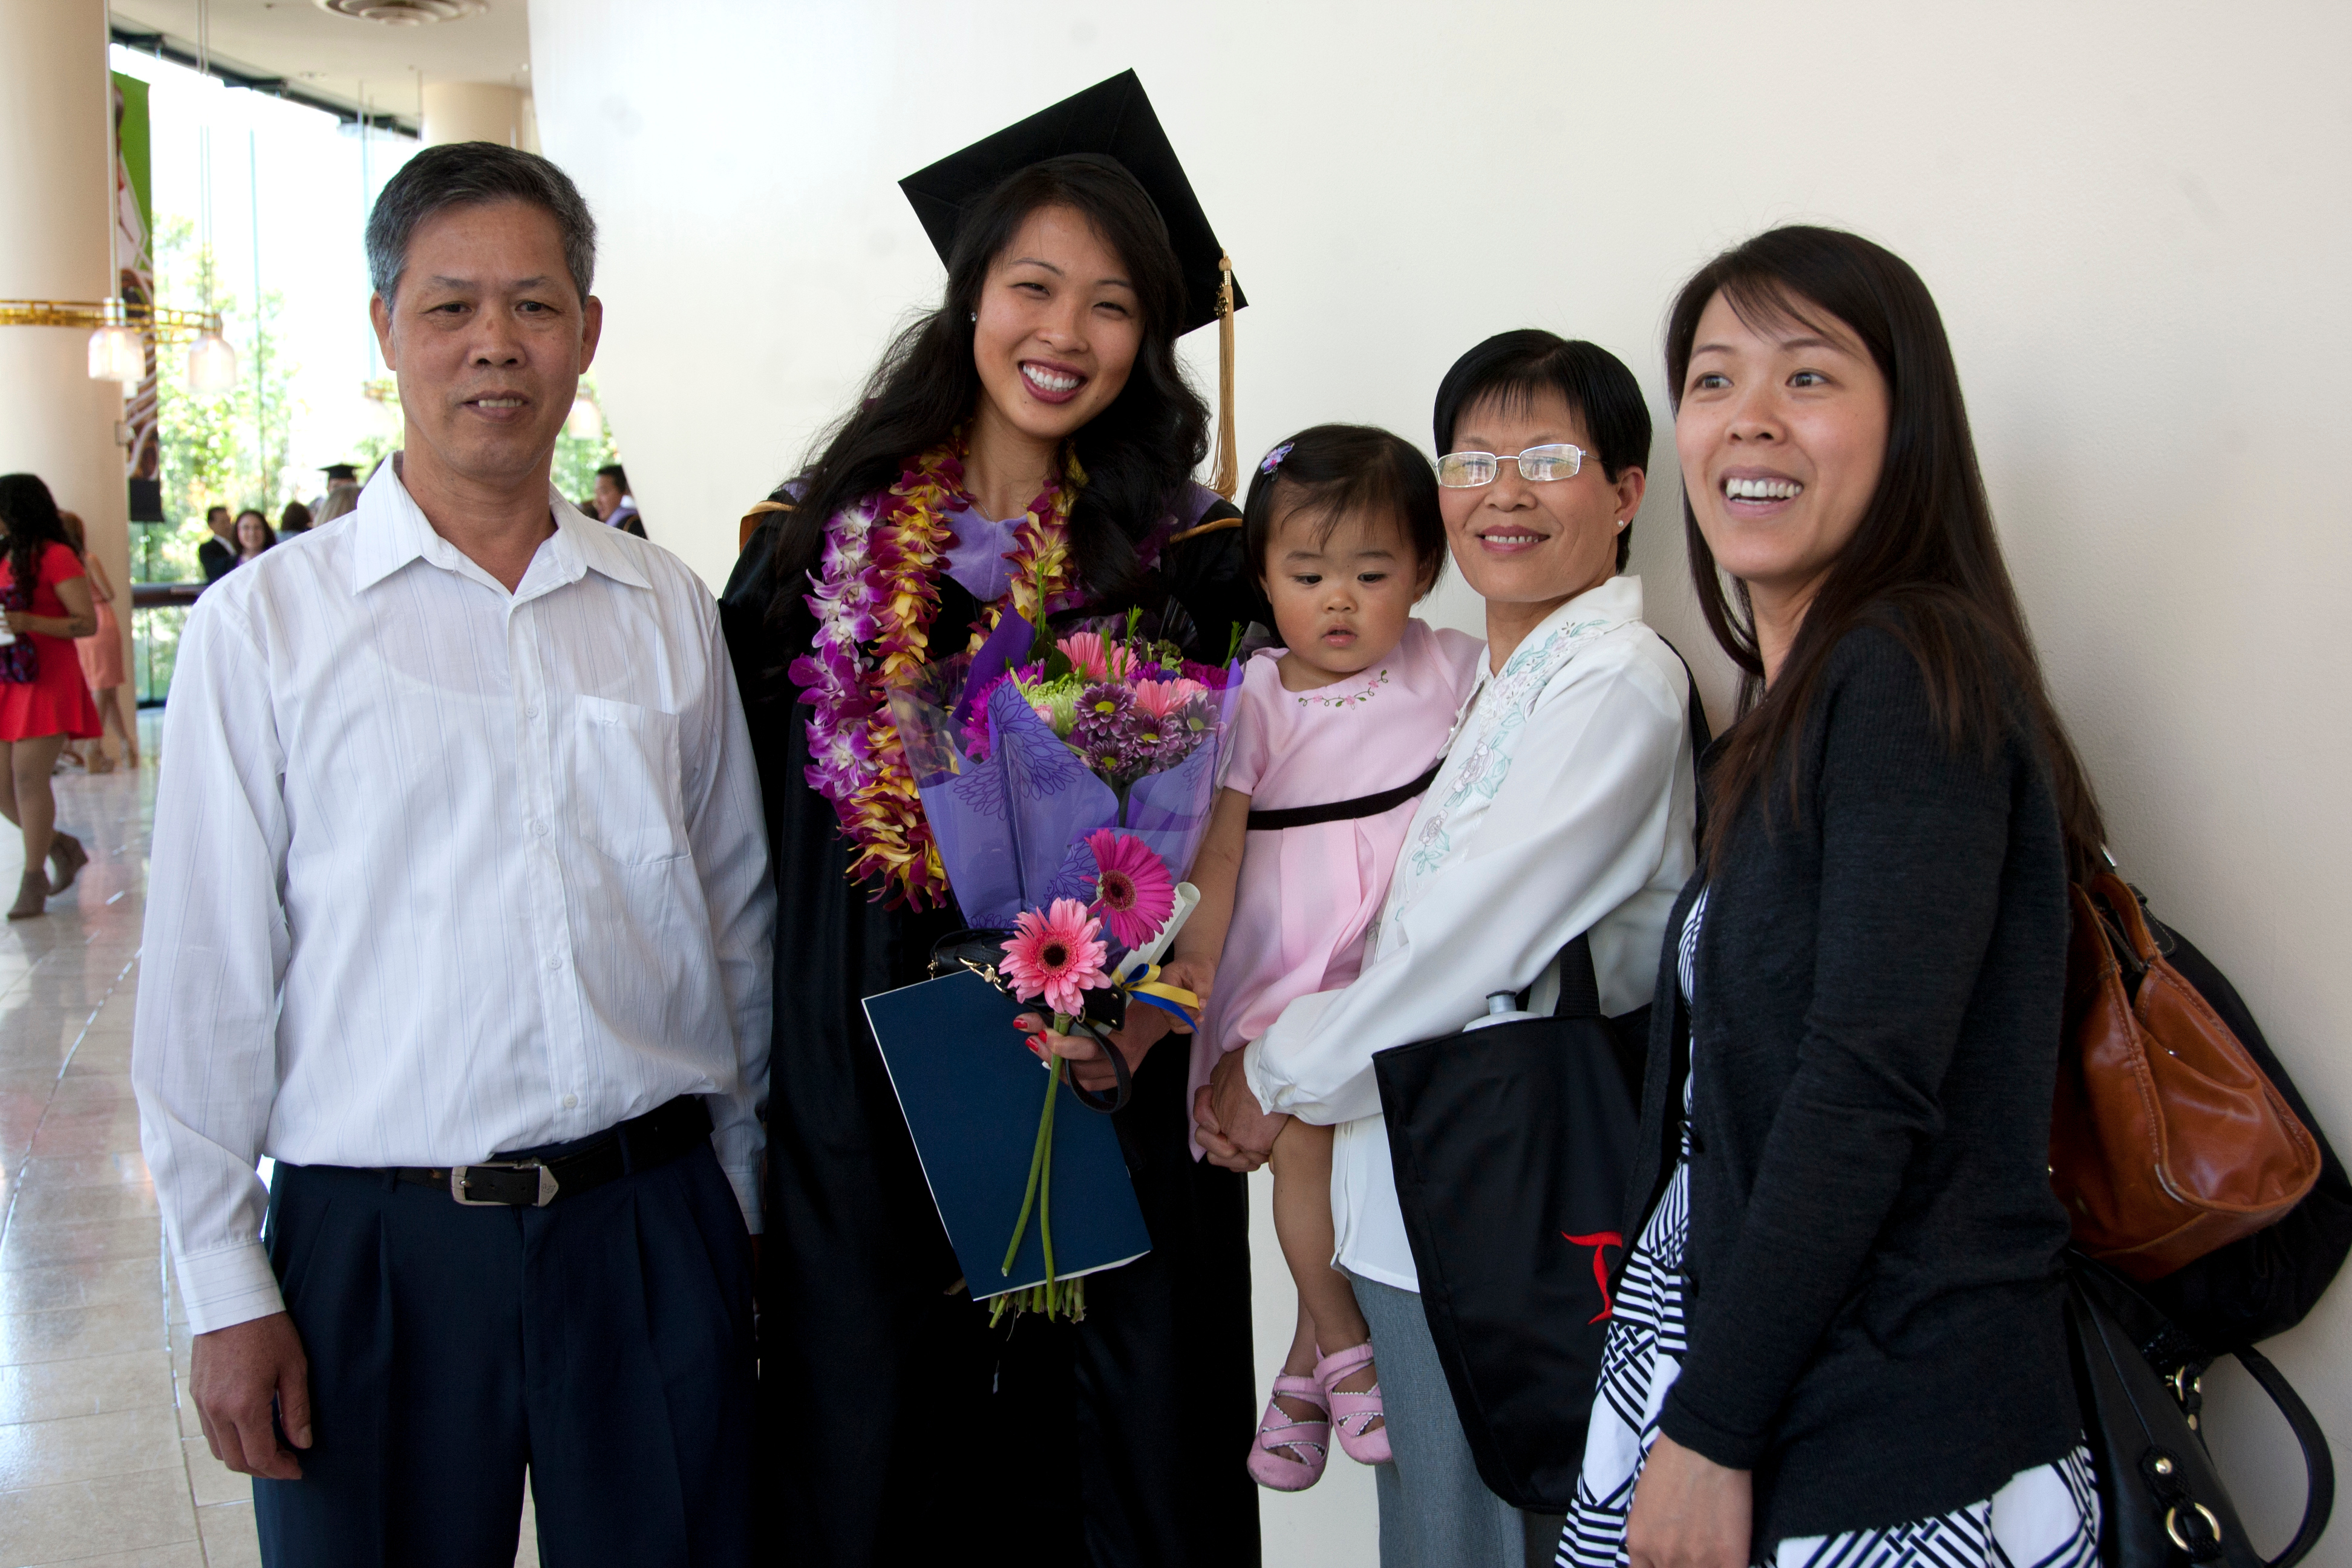 UCSF dental school graduate Cai Zhang takes a family photo after the commencement ceremony.